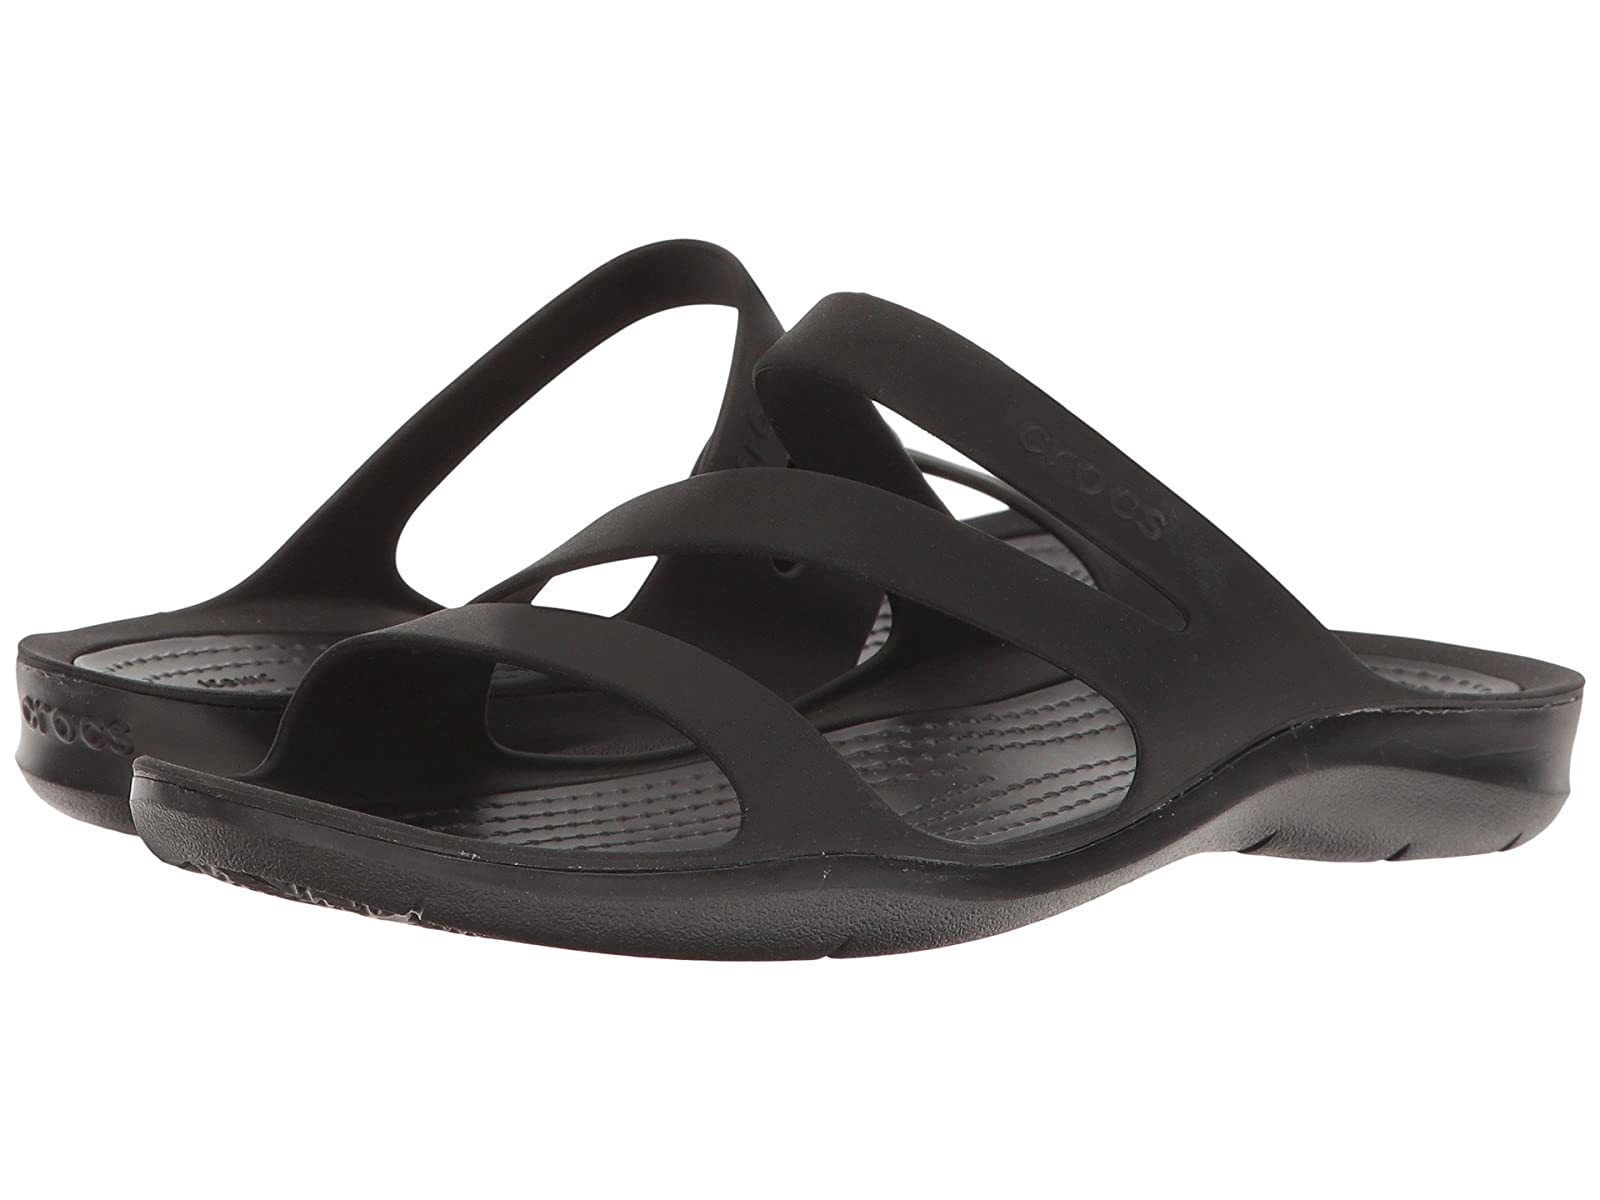 Crocs Swiftwater SandalComfortable and distinctive shoes